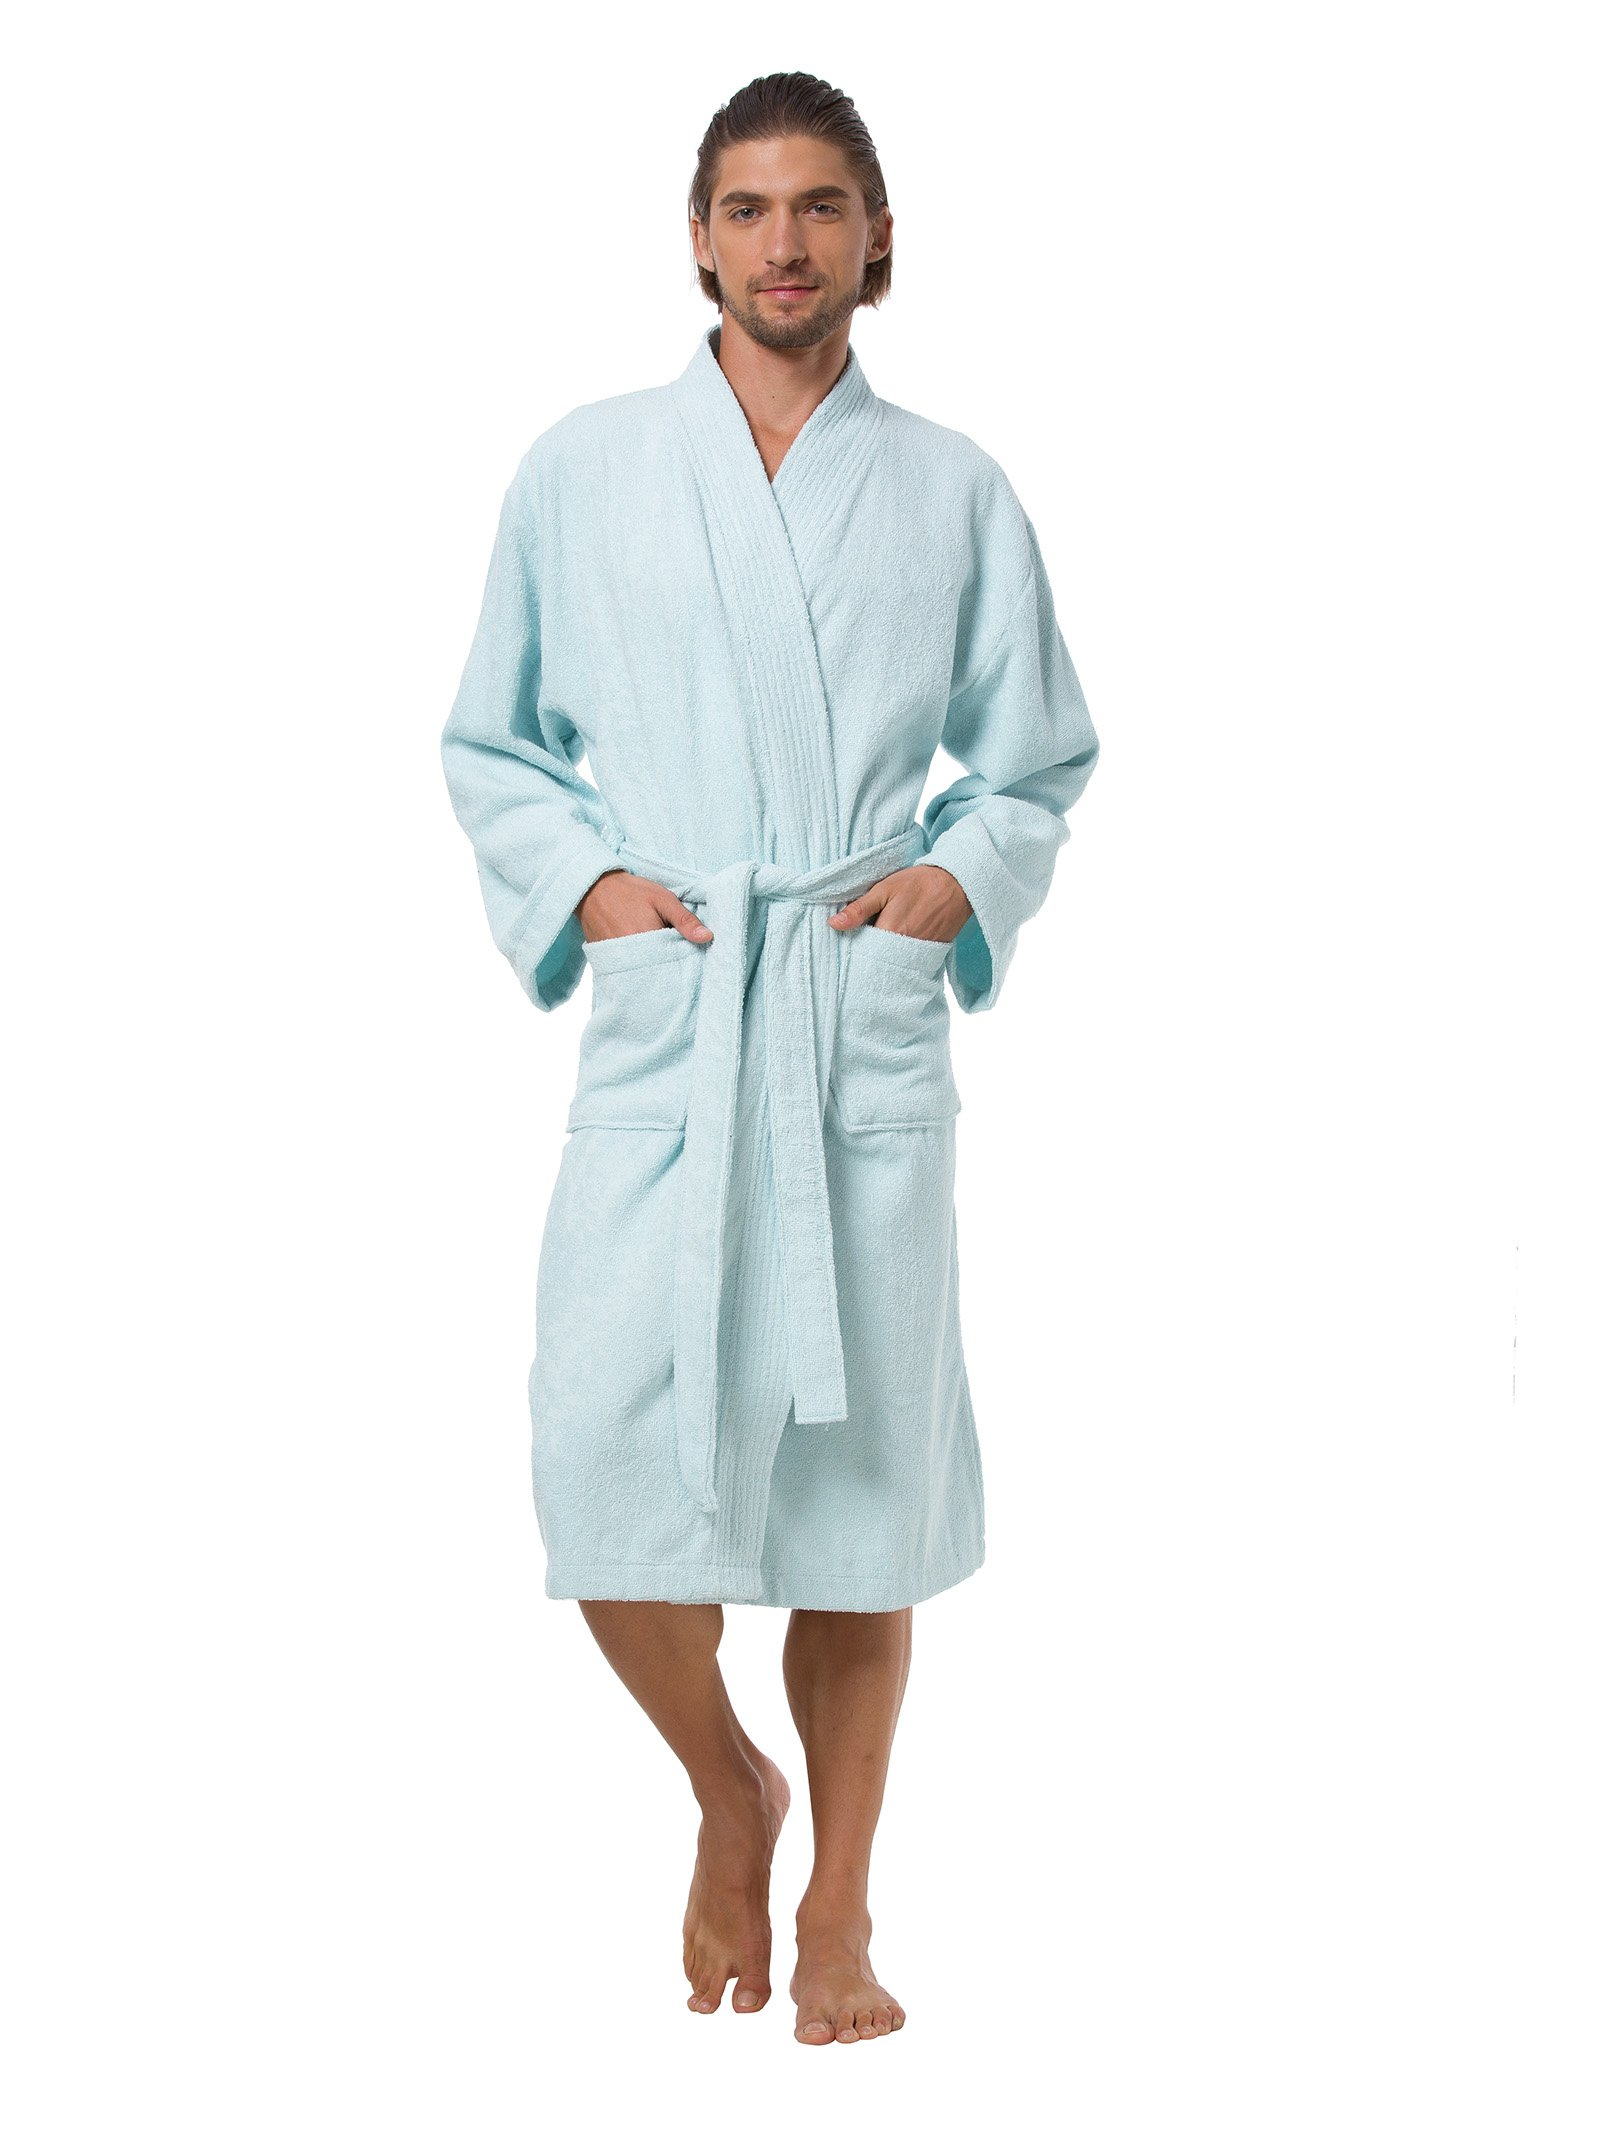 SIORO Robe Plus Size for Men Soft Cotton Bathrobe Long Kimono Robe with Pockets Casual Sleepwear Warm Absorbent Loungewear Gown Solid Skylight XL by SIORO